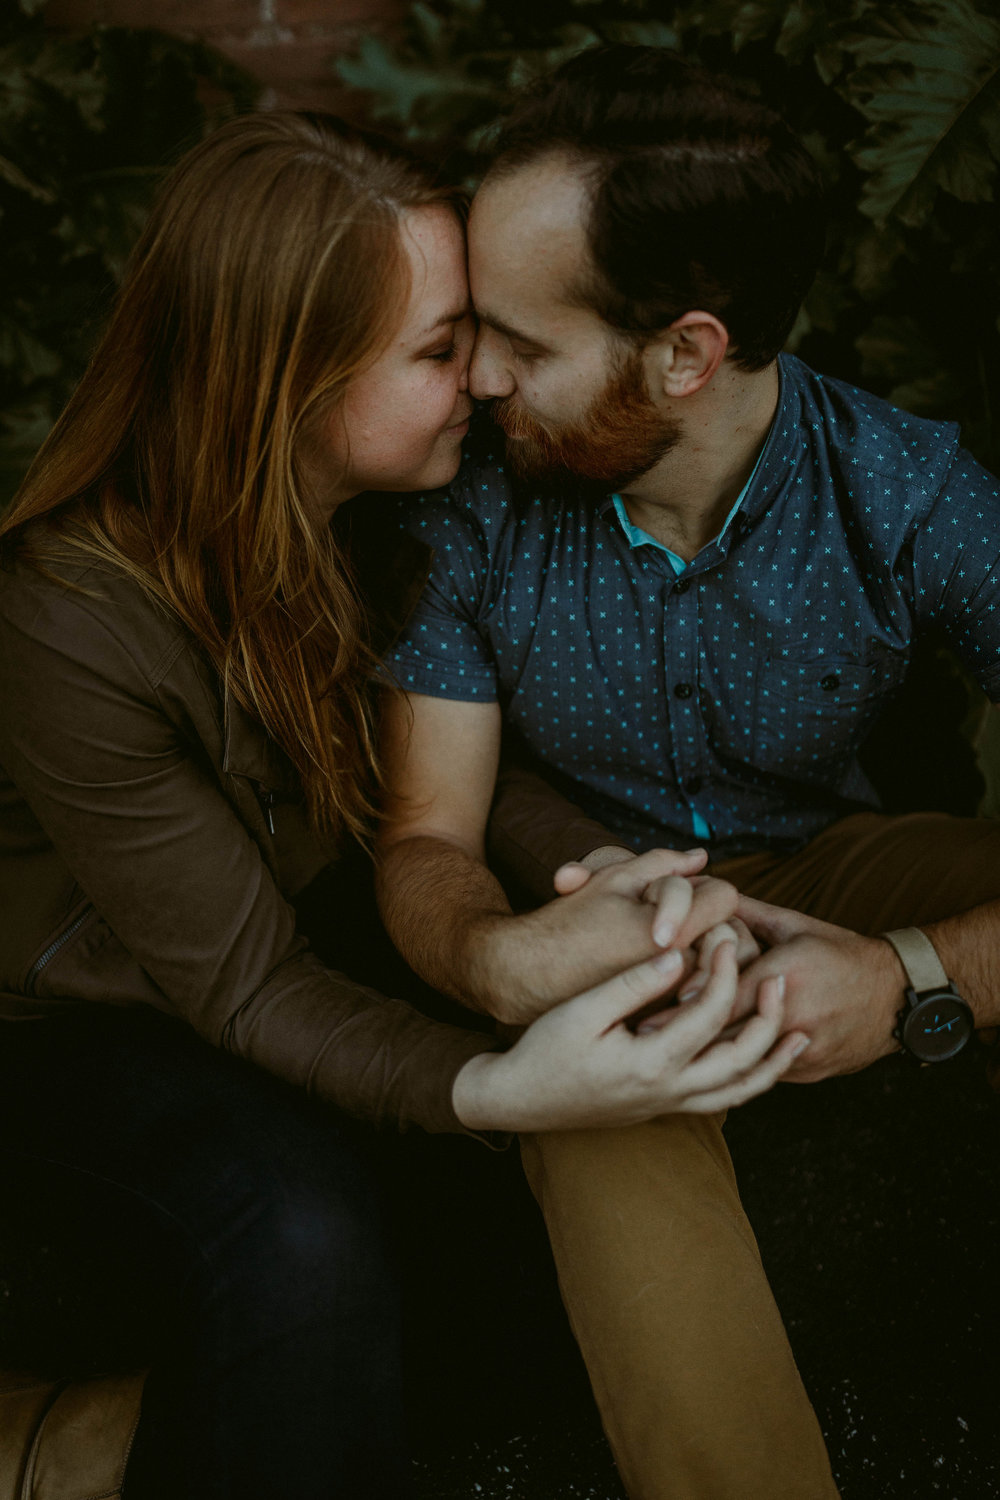 OhioCity+LakeErie-Sunset-Couples-Session_Rachel+Brian_MJPHOTO-59.jpg